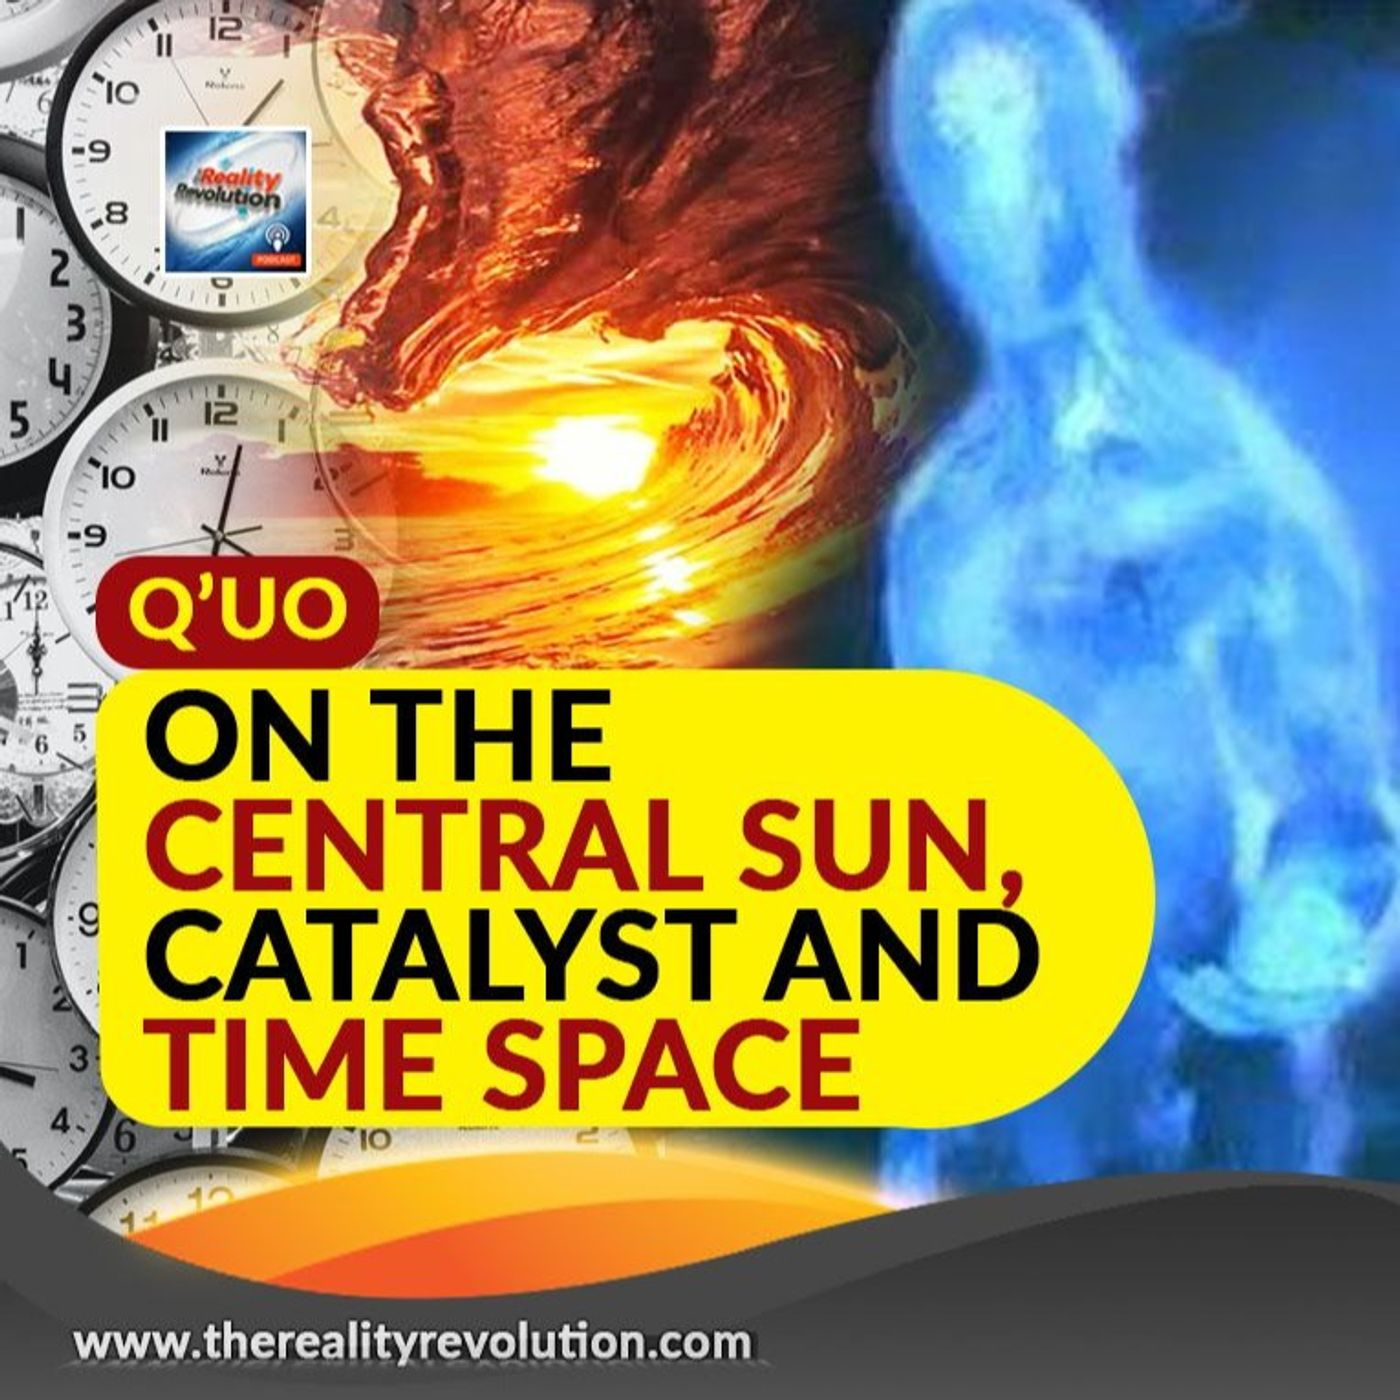 Q'uo on the Central Sun, Catalyst and Time Space